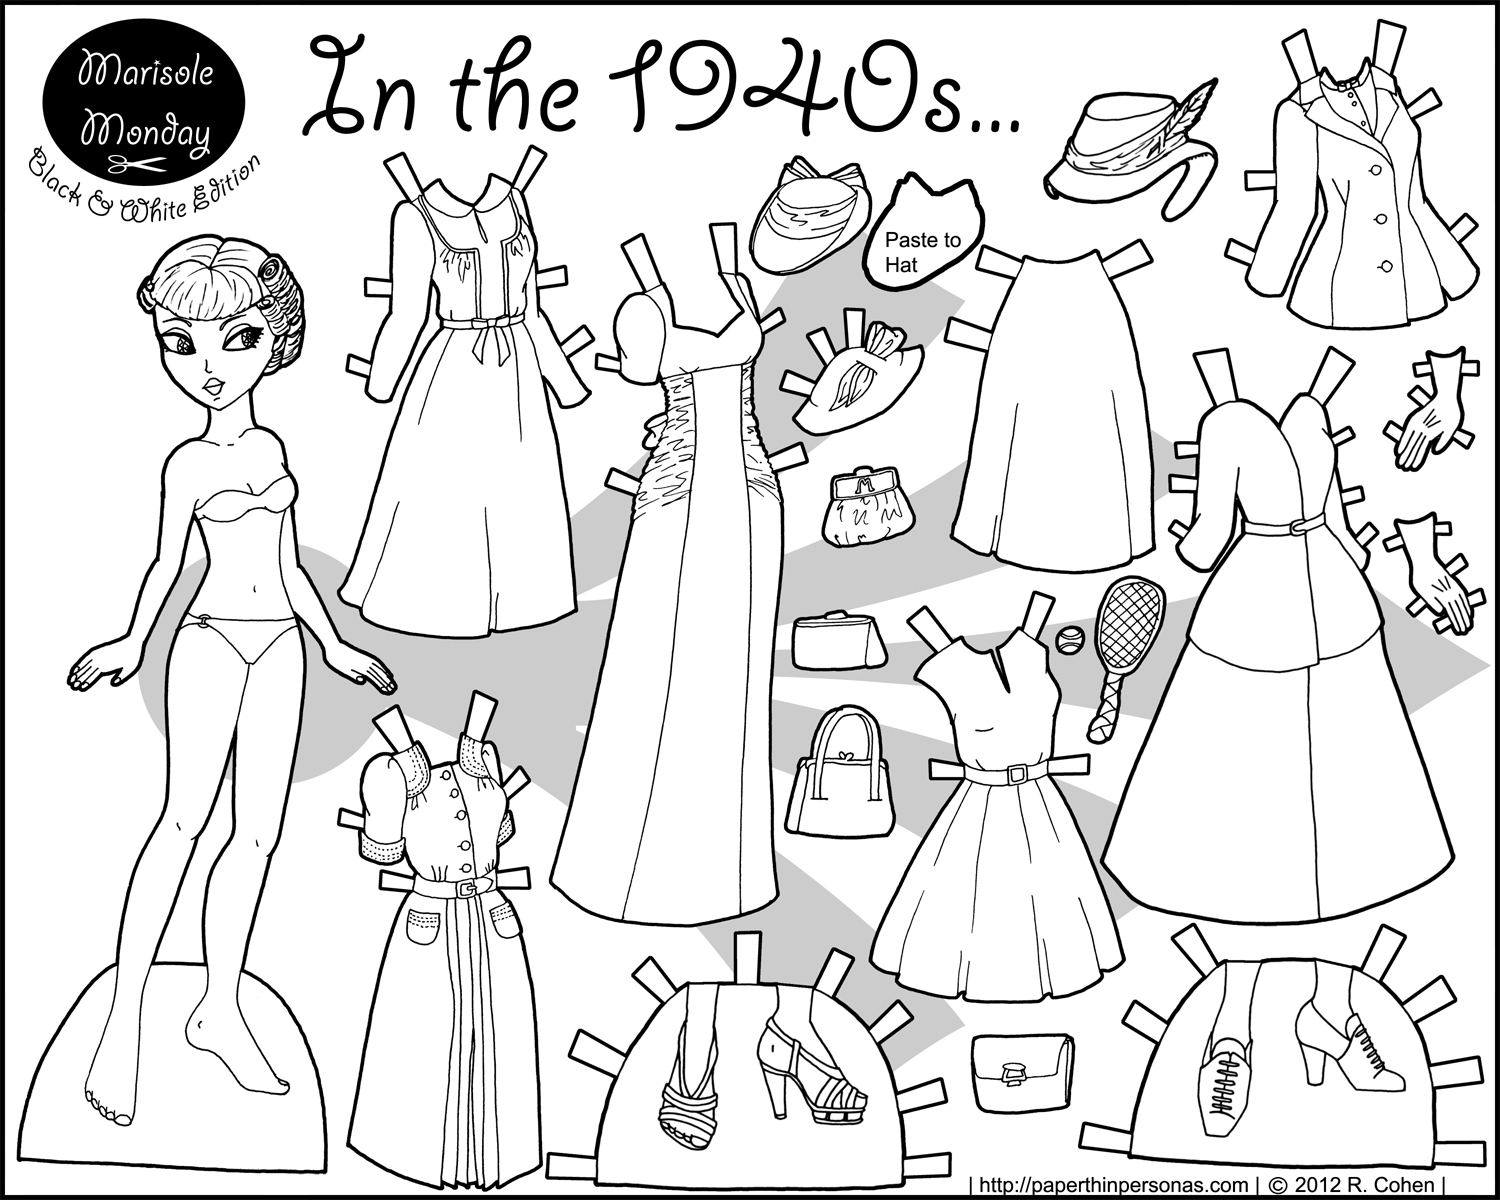 In The 1940s Paper Doll Coloring Page | Paper Doll 7